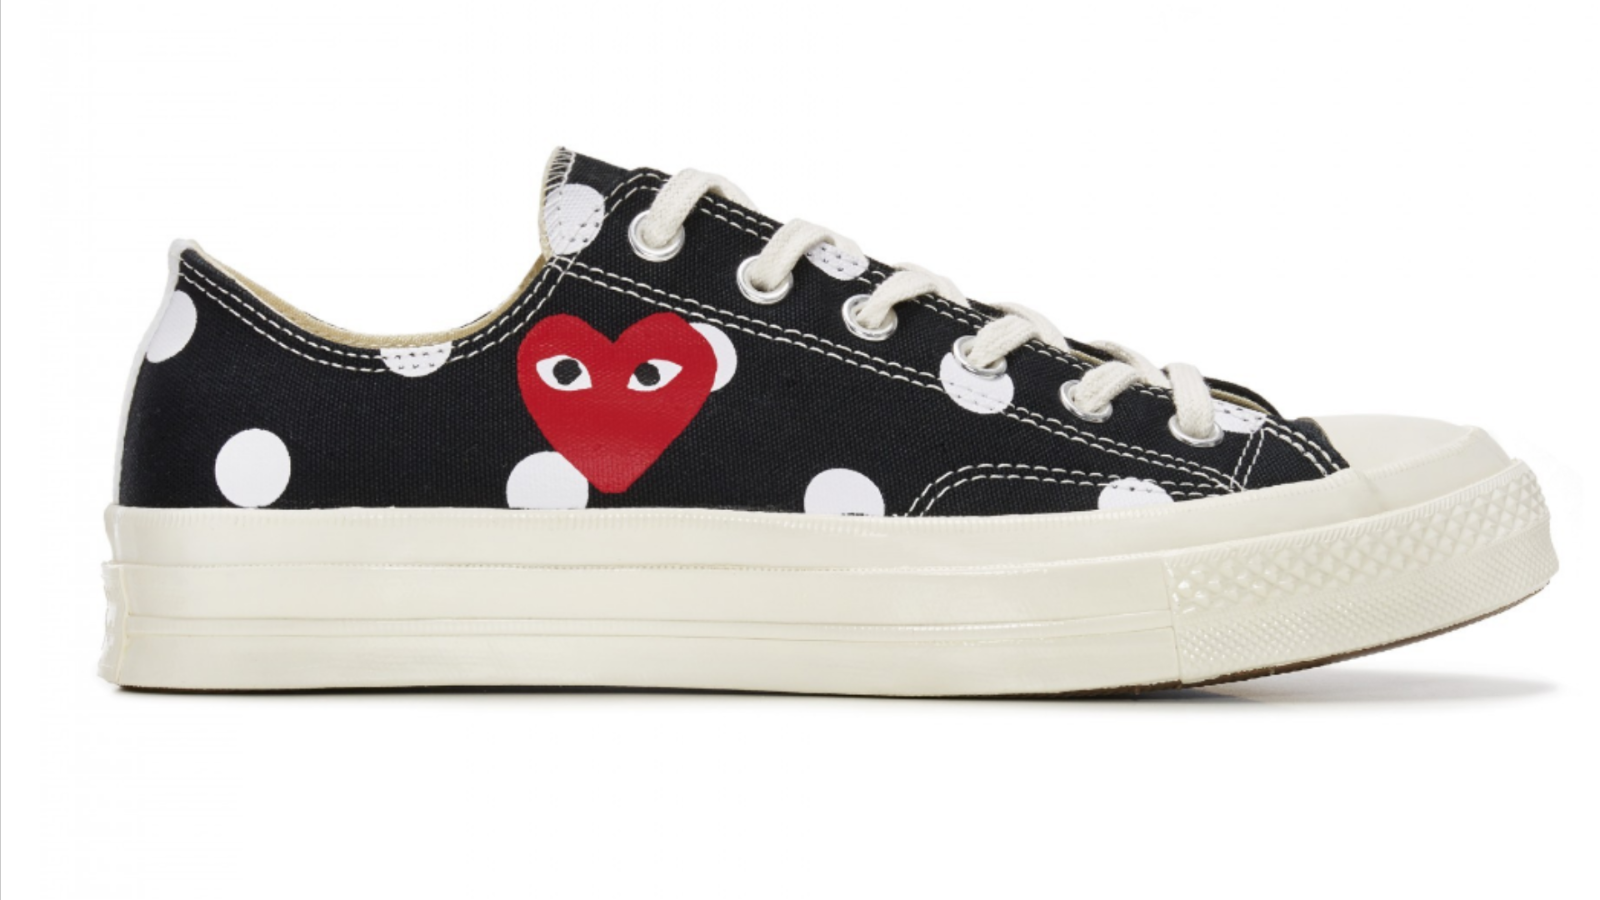 CONVERSE X COMME DES GARCONS POLKA DOT Chuck Taylor '70 Low Black shoes 4-11